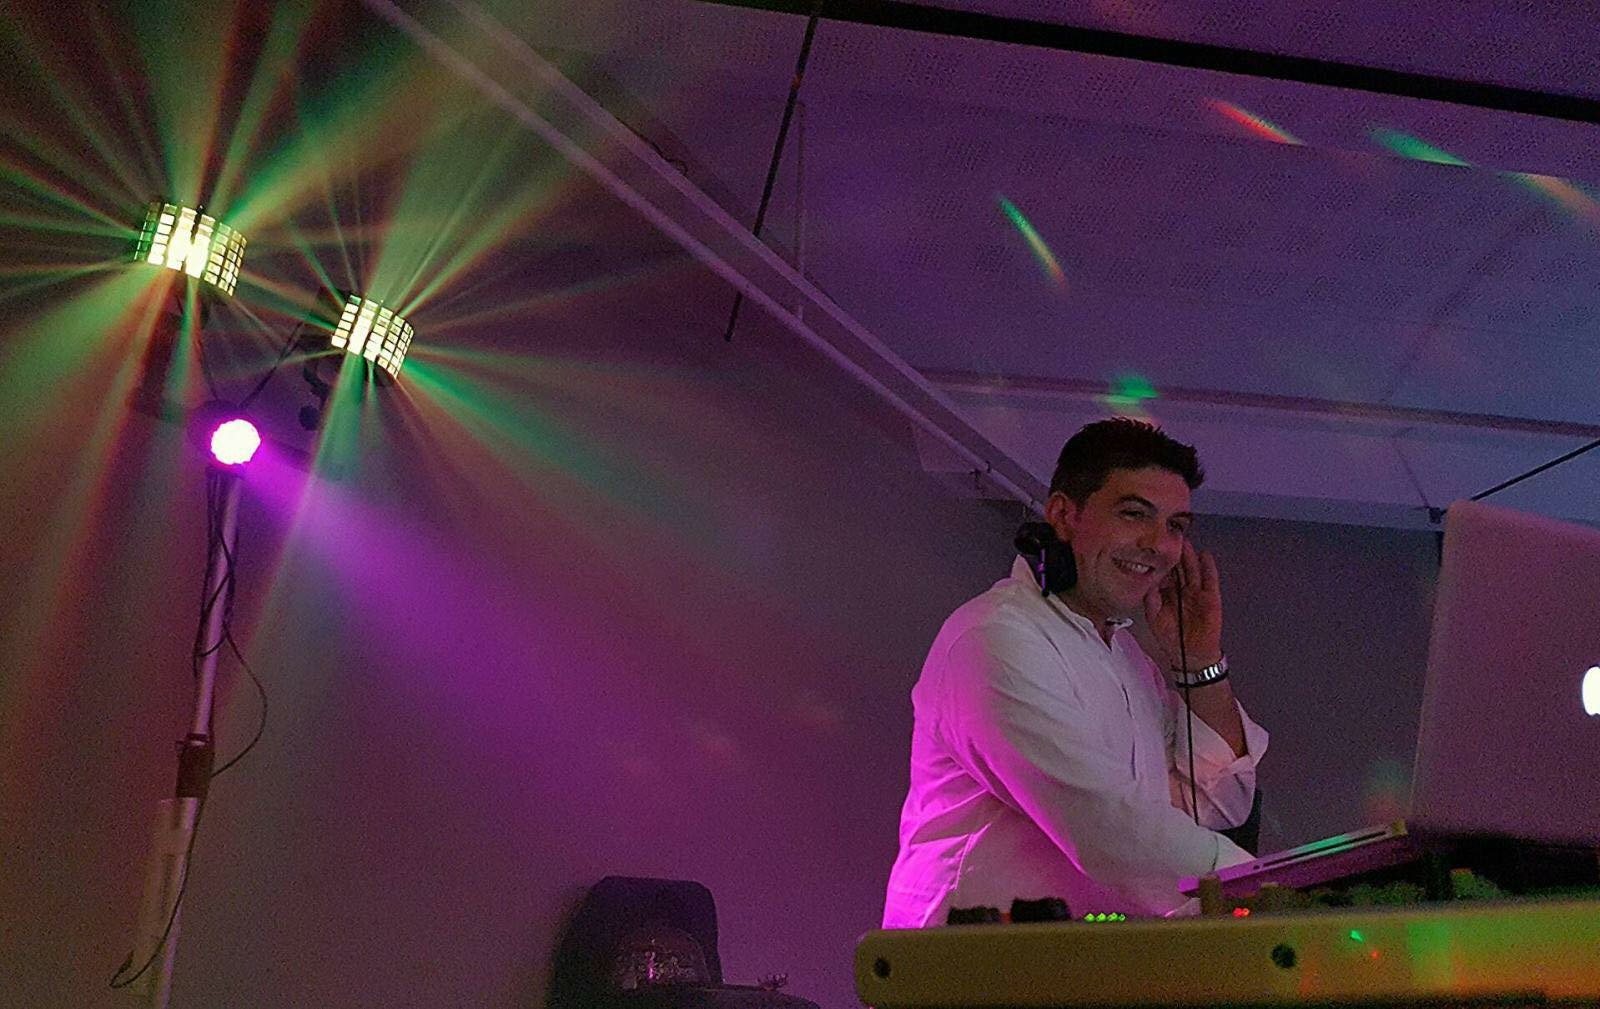 Dj's kefalonia weddings - Makis Klonis, Dj, Ηχητικός εξοπ.